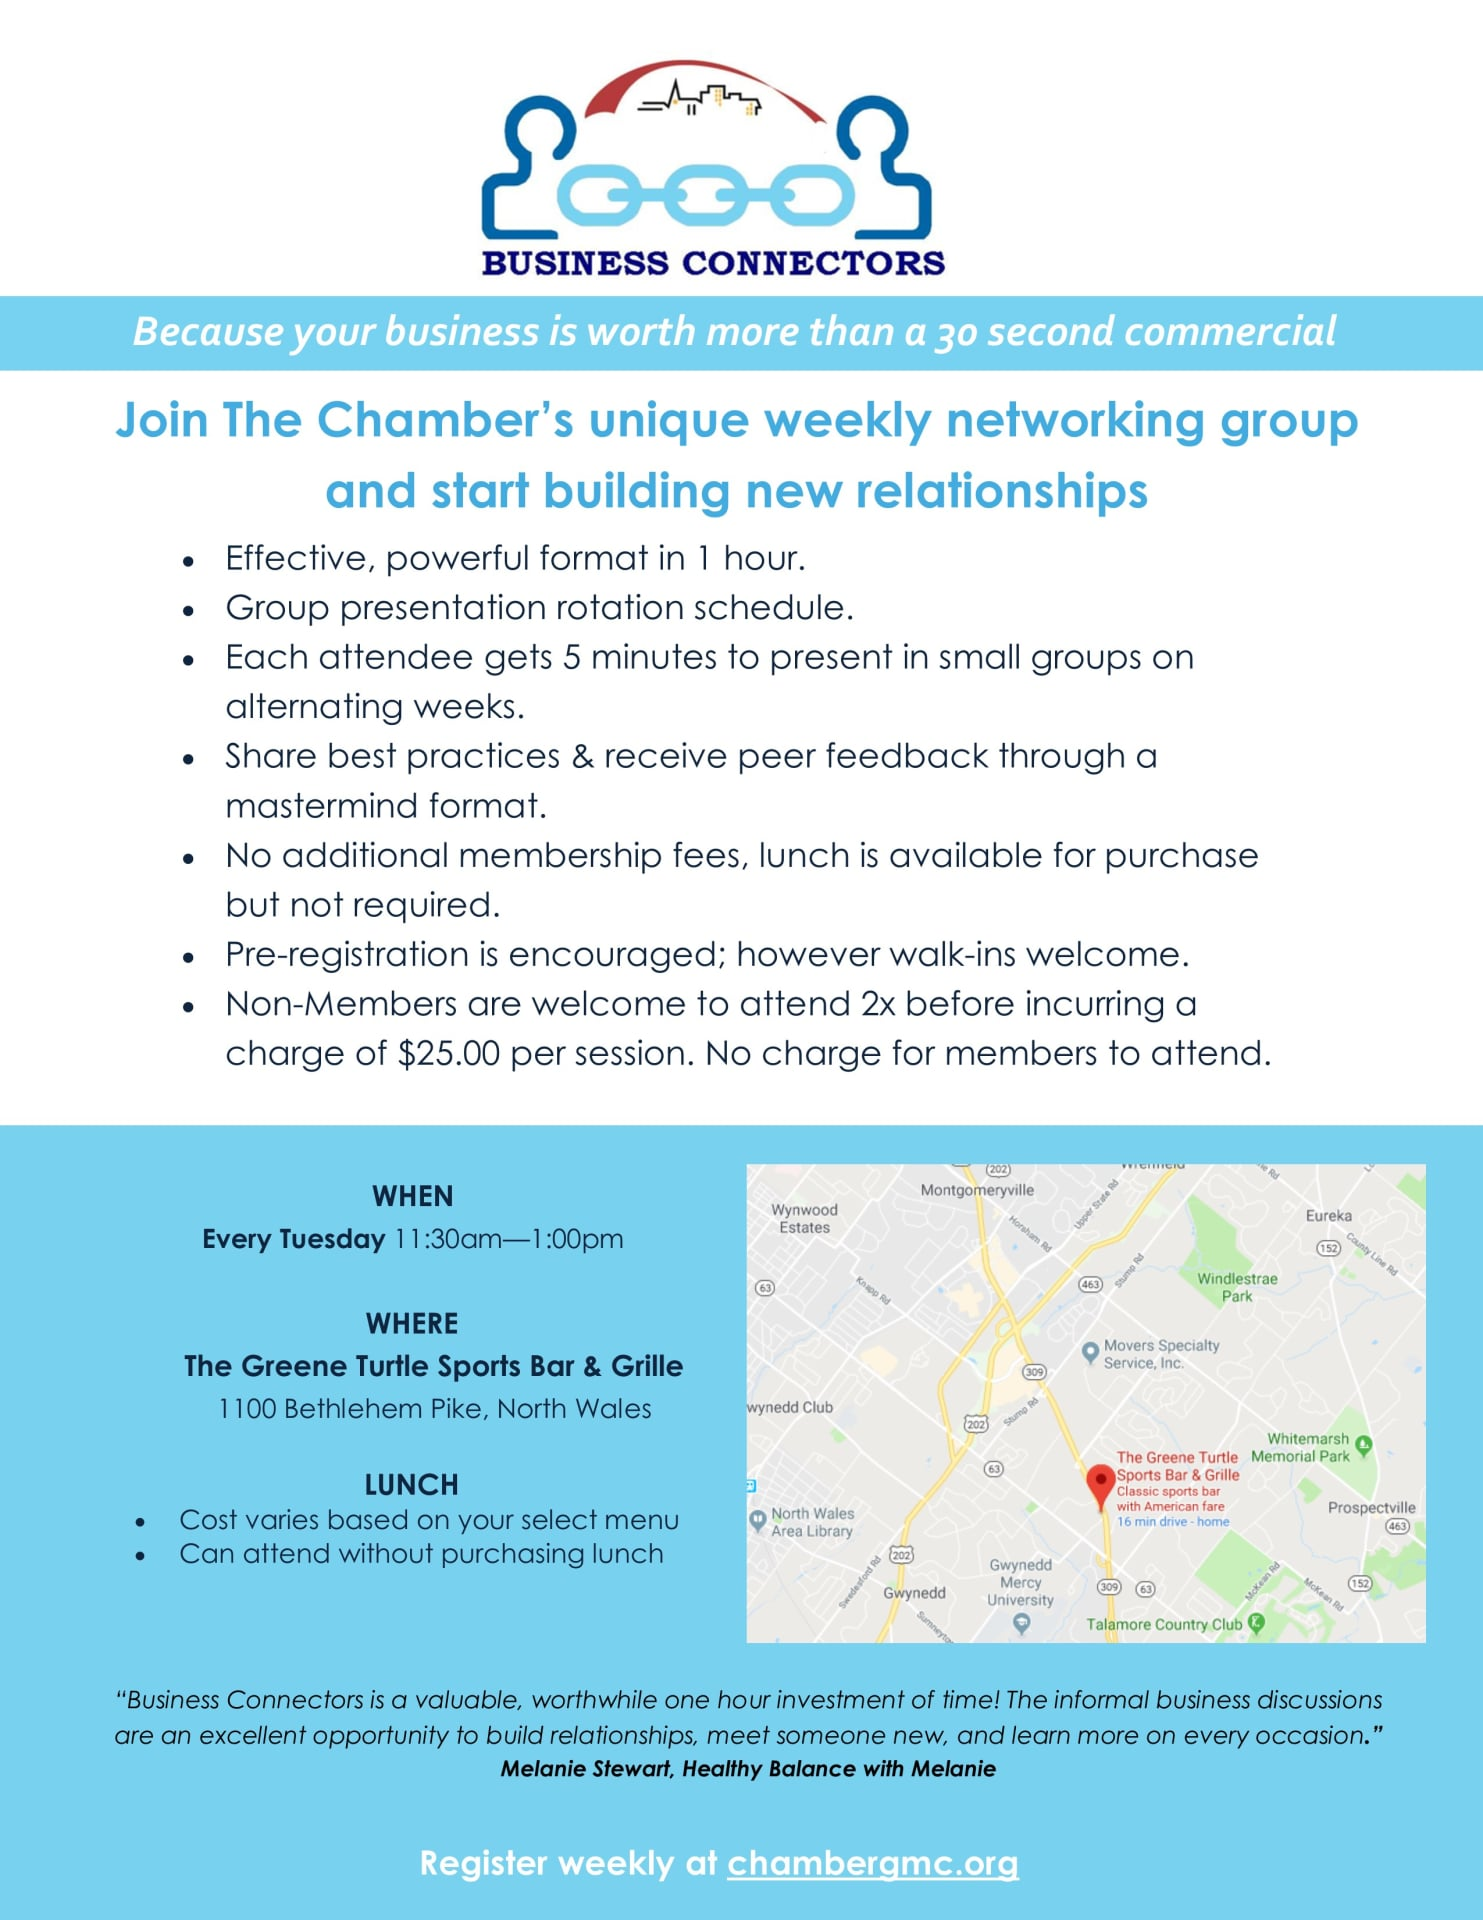 business connectors weekly networking group lansdale worcester skippack blue bell north wales gwynedd chamber greater montgomery county chamber